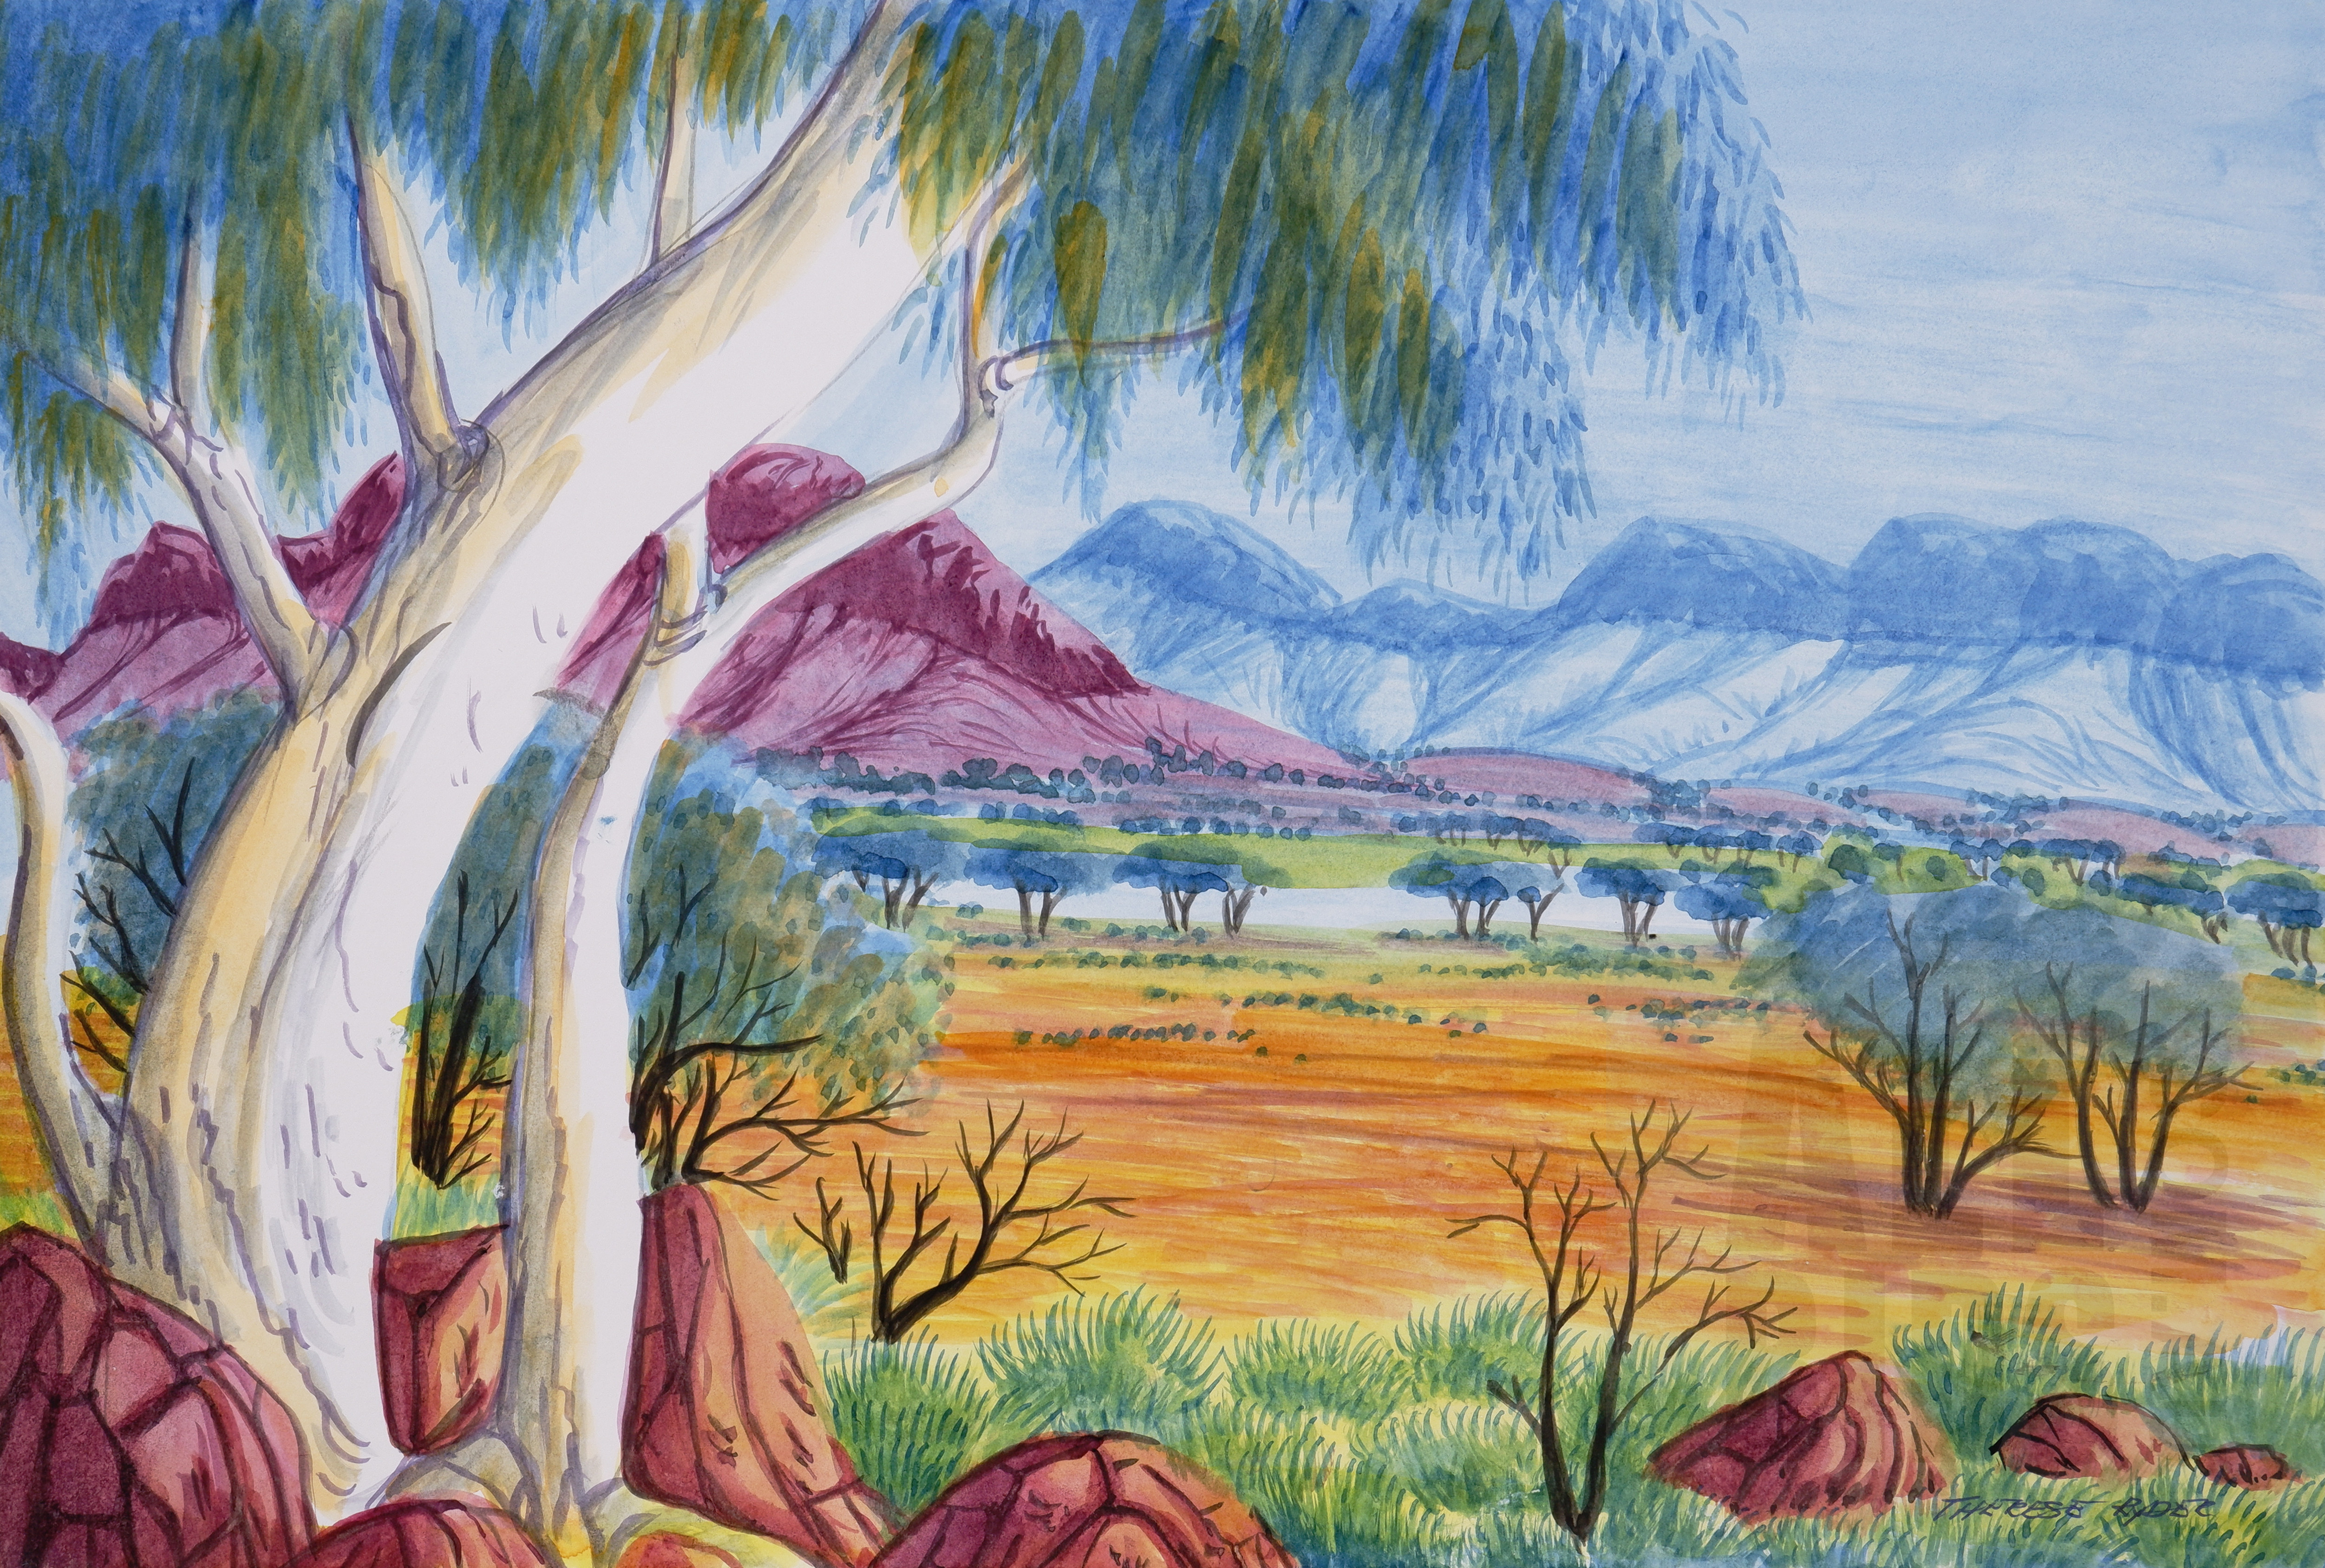 'Therese Ryder (born 1954, Arrernte language group), West MacDonnell Ranges 2010, Watercolour, 26 x 38 cm'